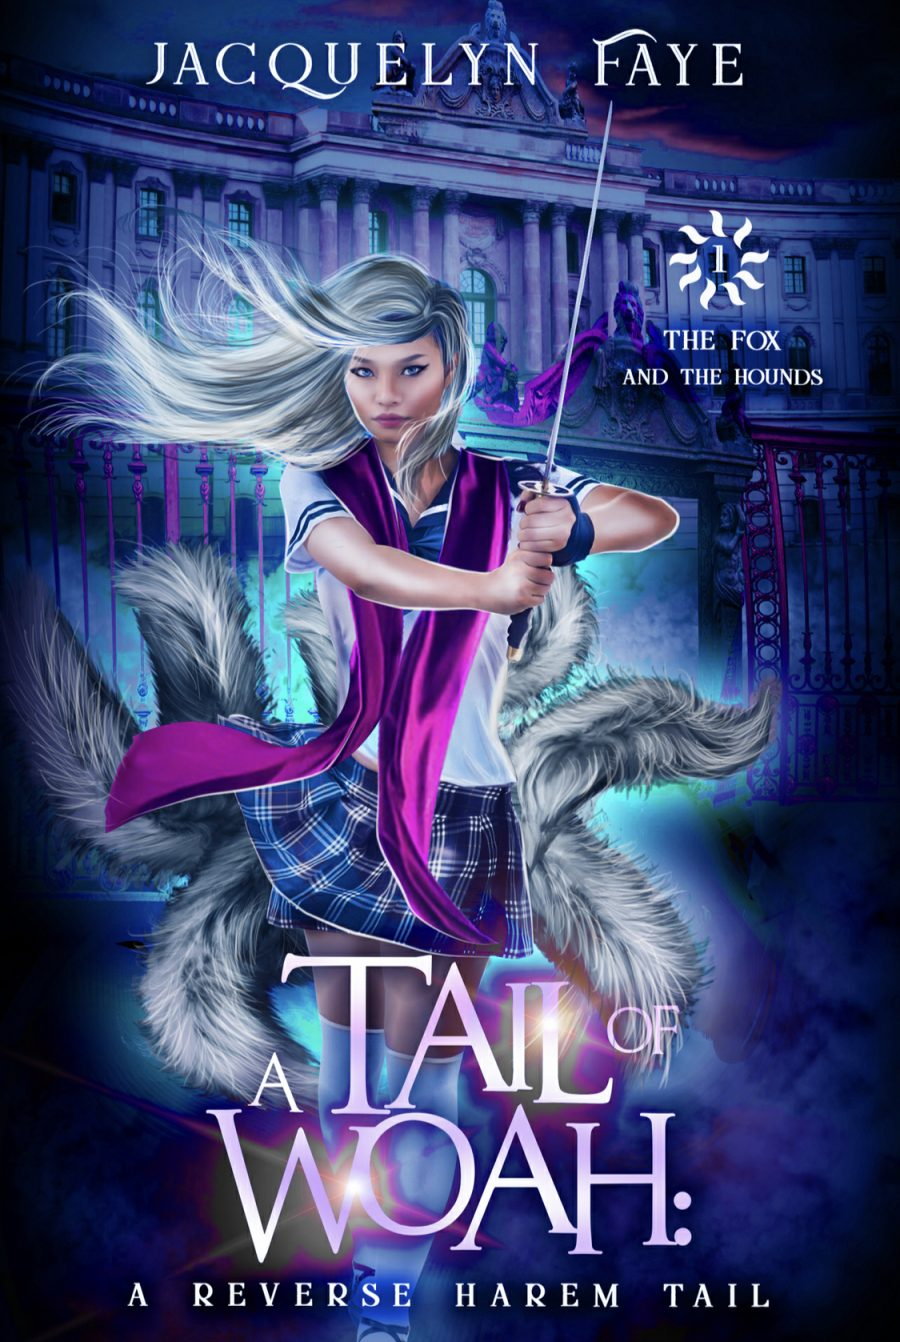 A Tail of Woah by Jacquelyn Faye - A Book Review #BookReview #RH #WhyChoose #Paranormal #Academy #5Star #KindleUnlimited #KU